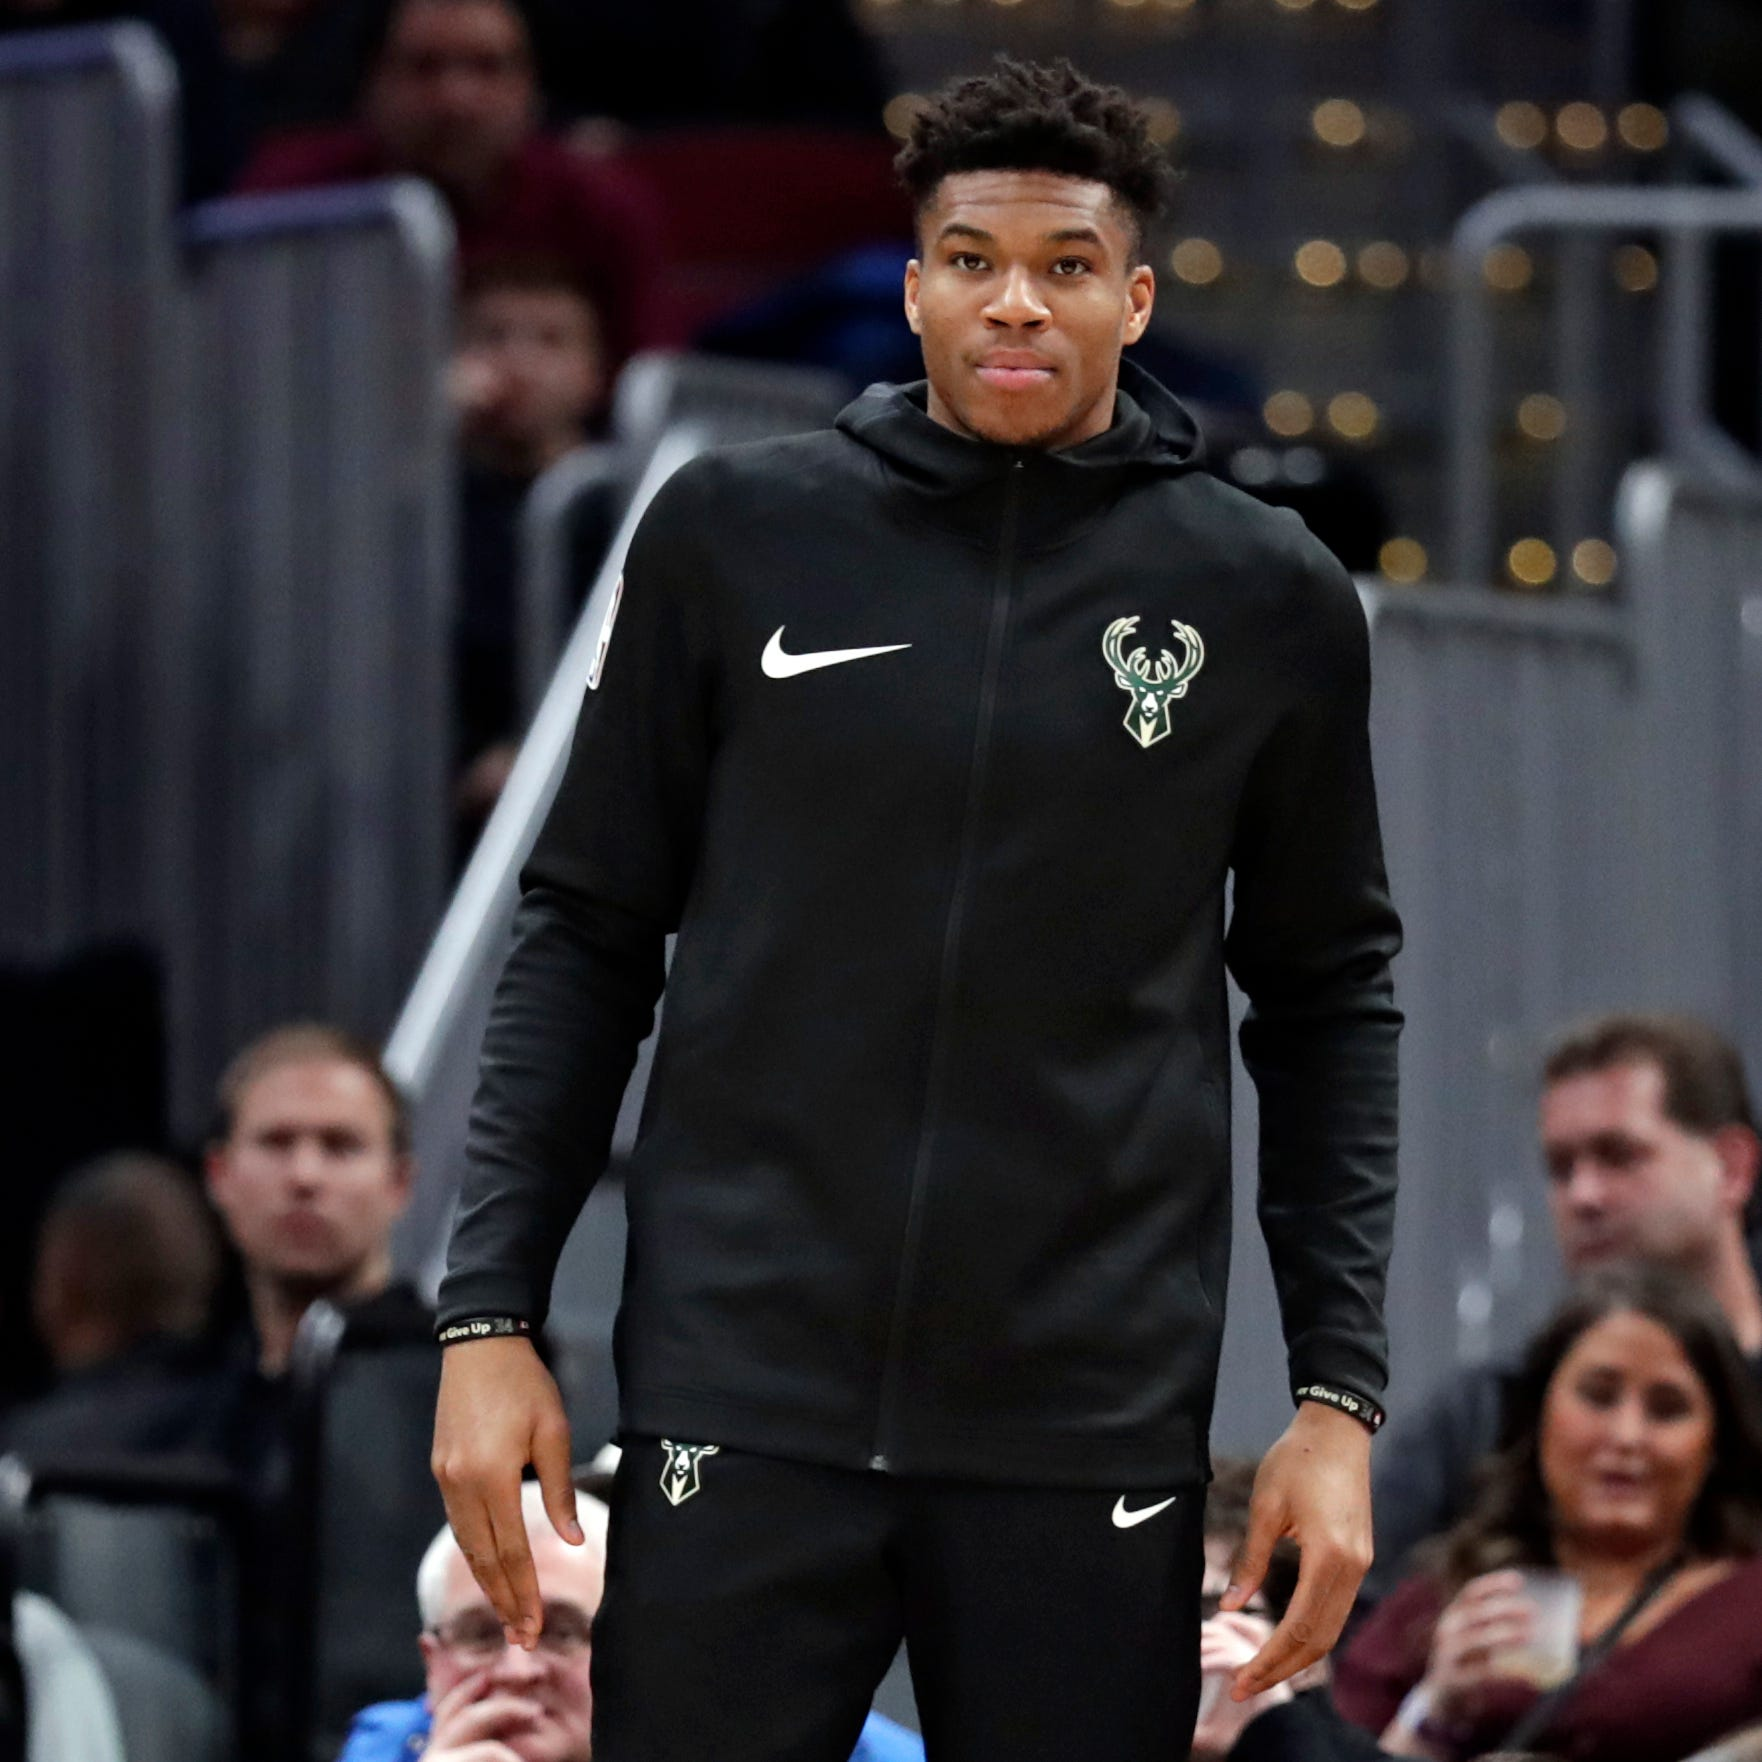 The suddenly struggling Bucks are trying to stay focused and stabilize over final 10 games